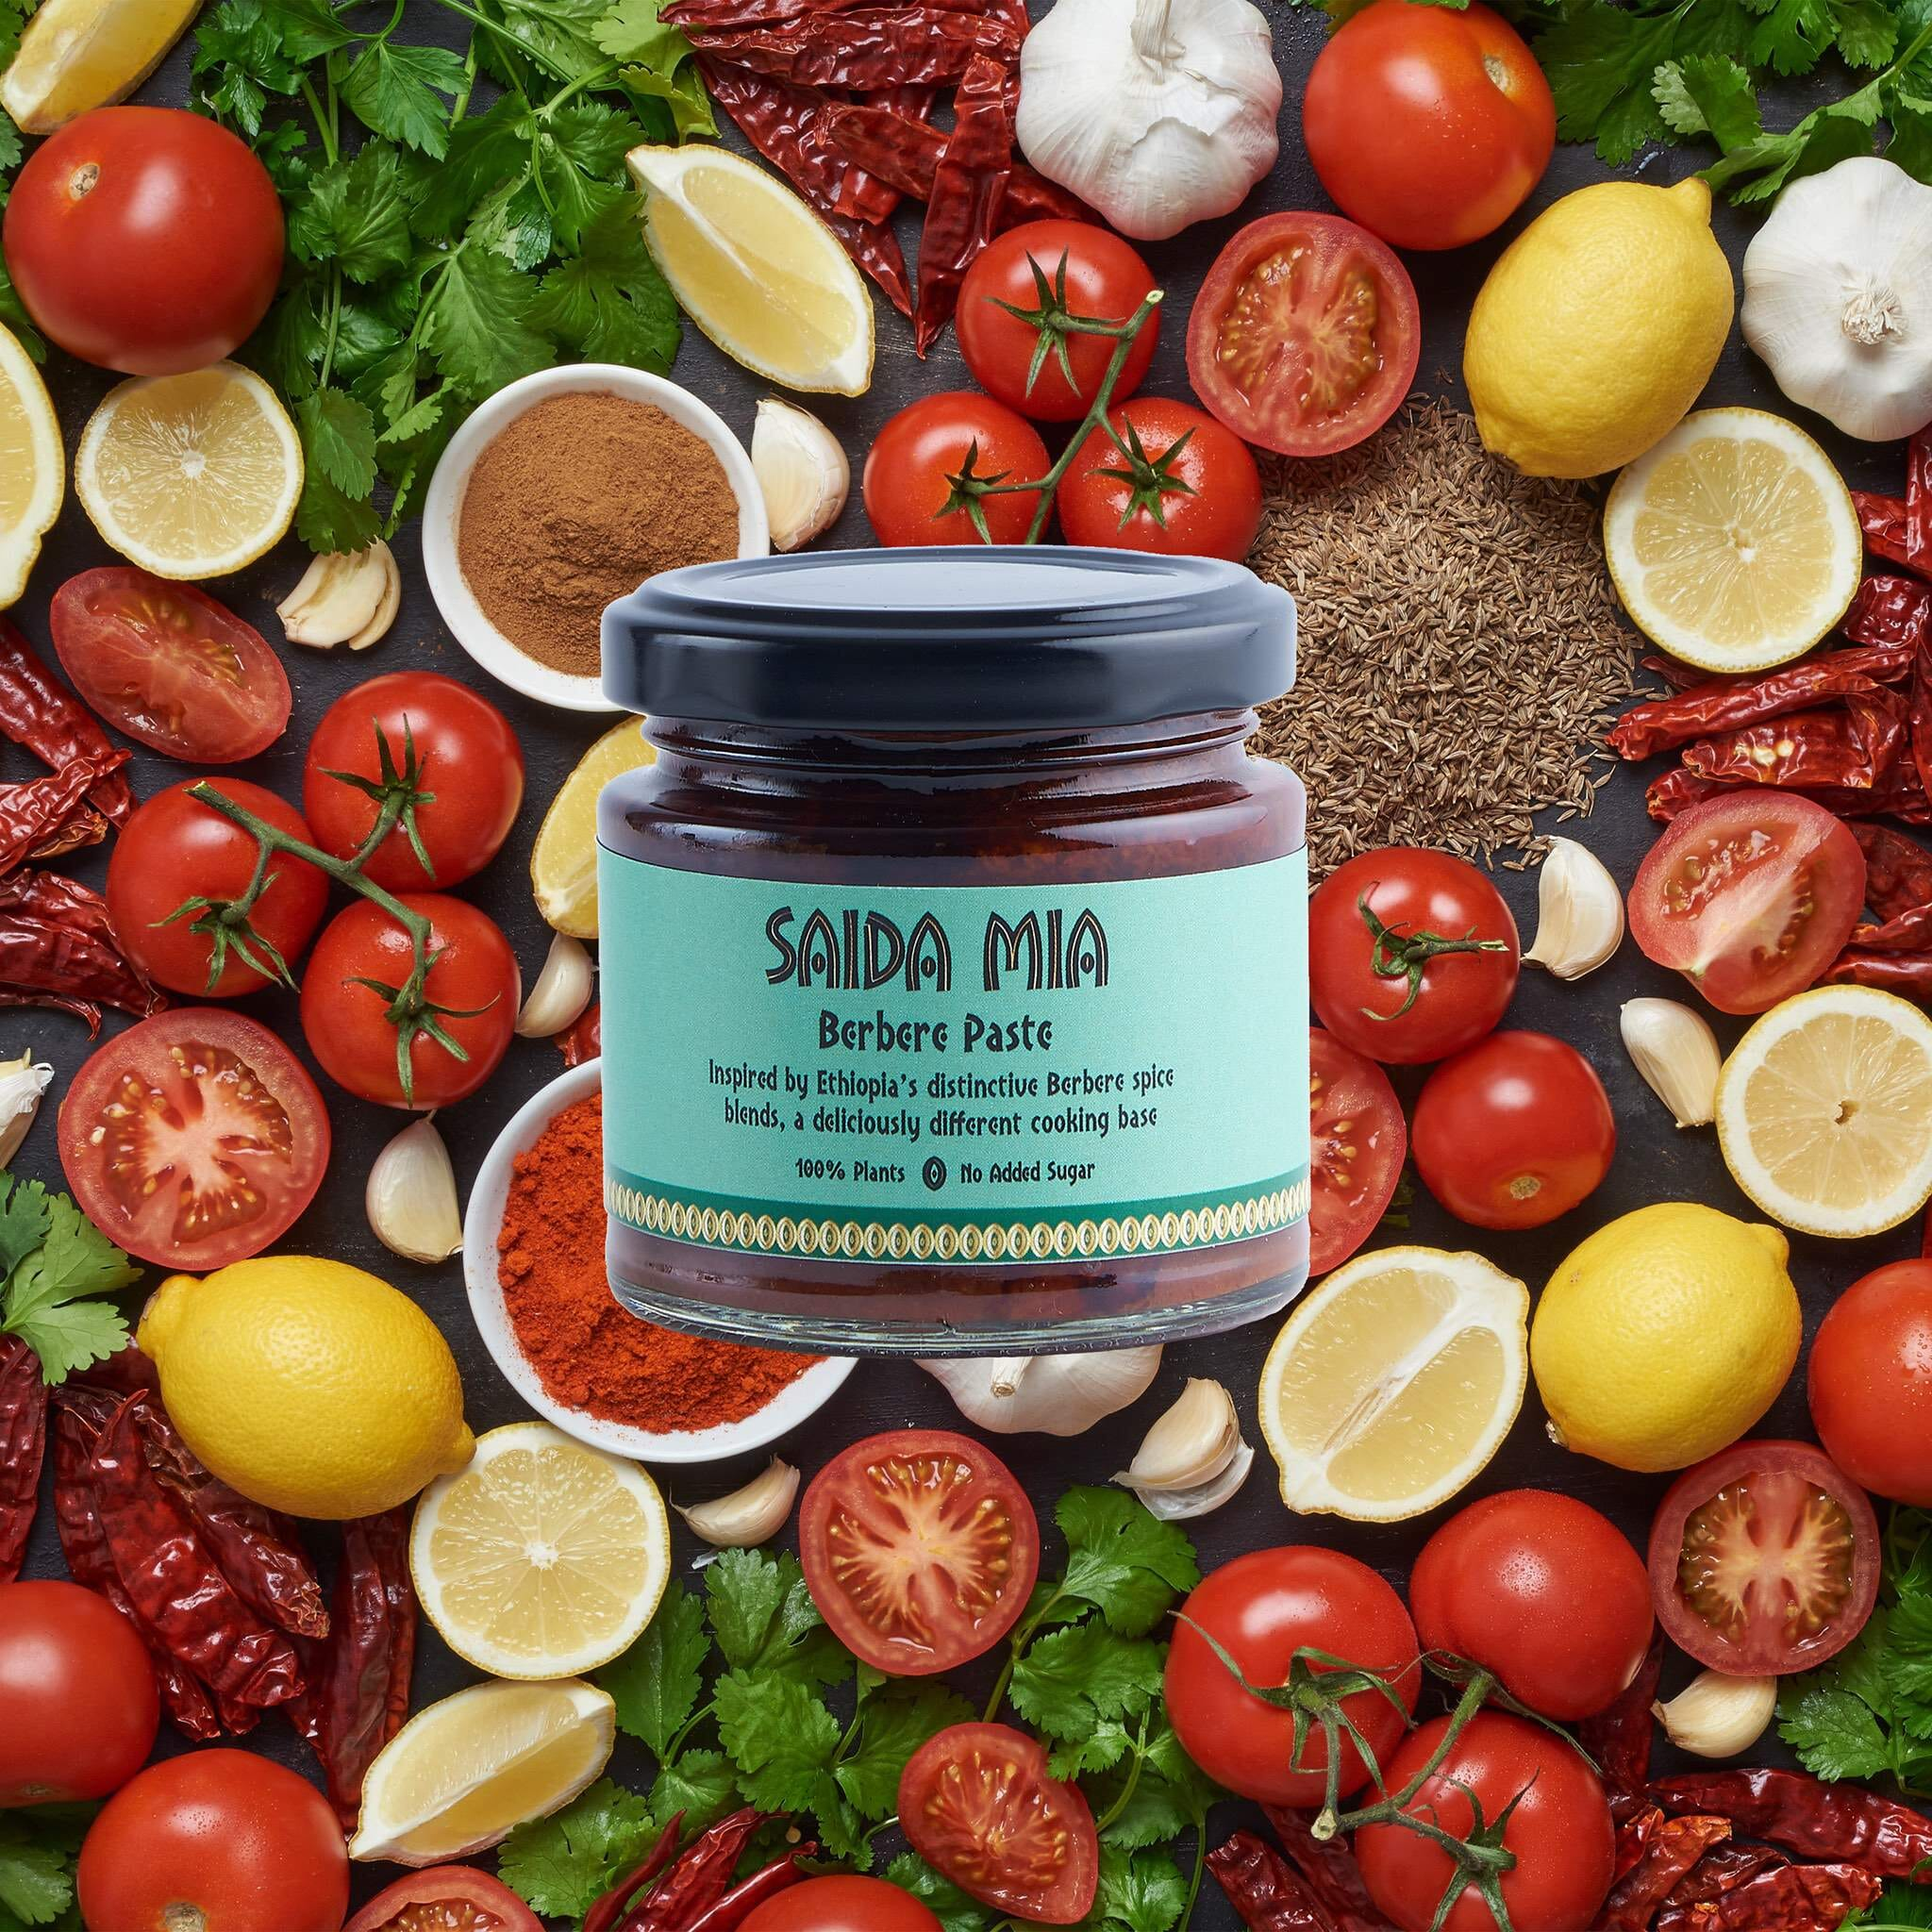 Saida Mia African Products Berbere Paste Pack Ingredients Image